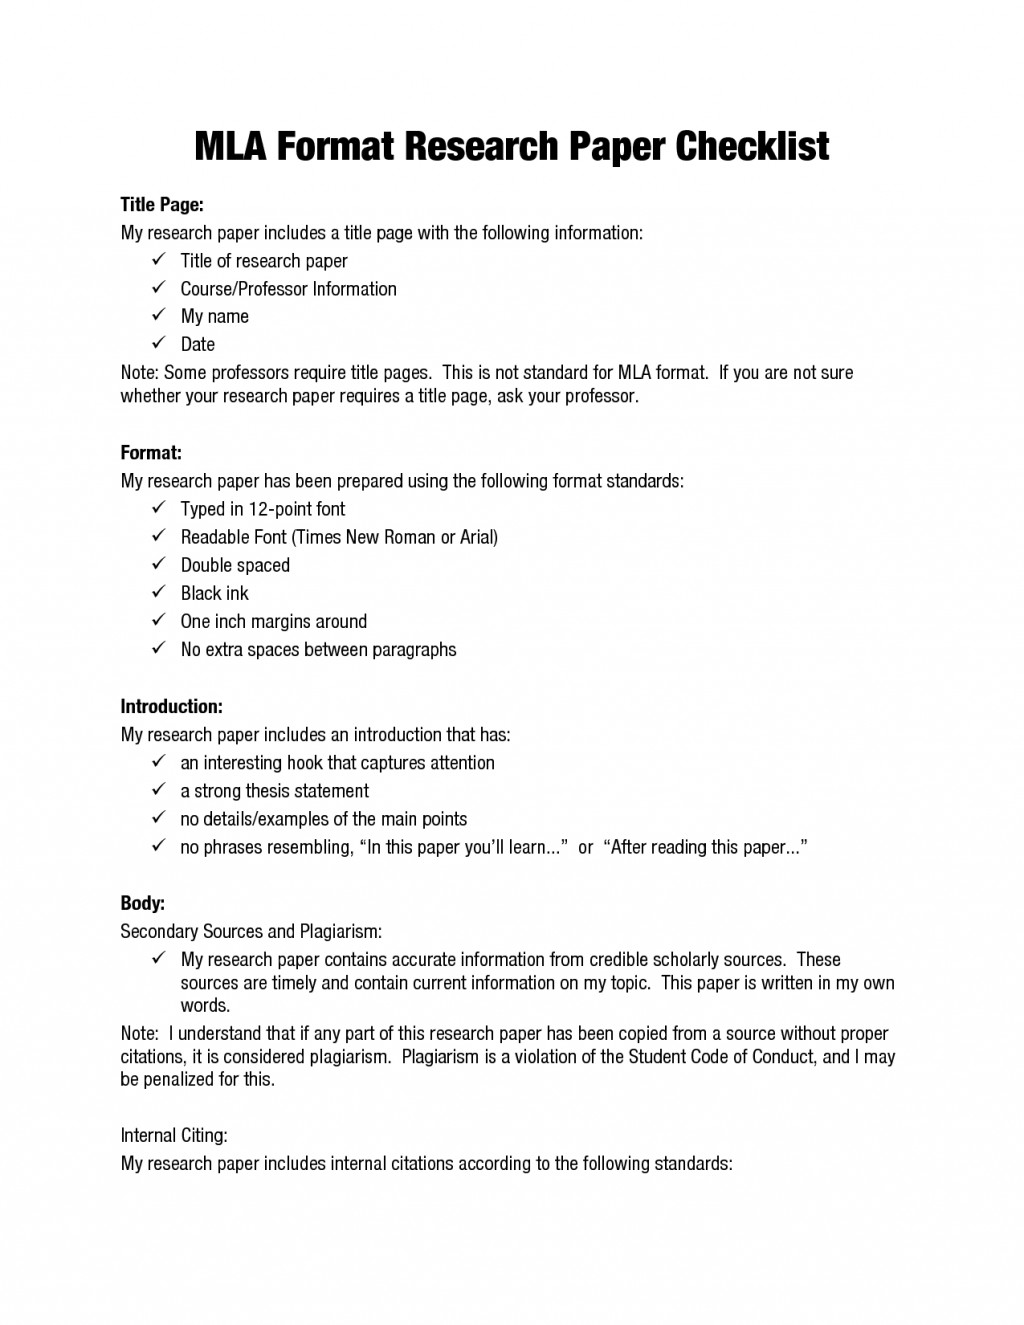 001 Research Paper Mla Format Singular Papers Outline Example Checklist Works Cited Large